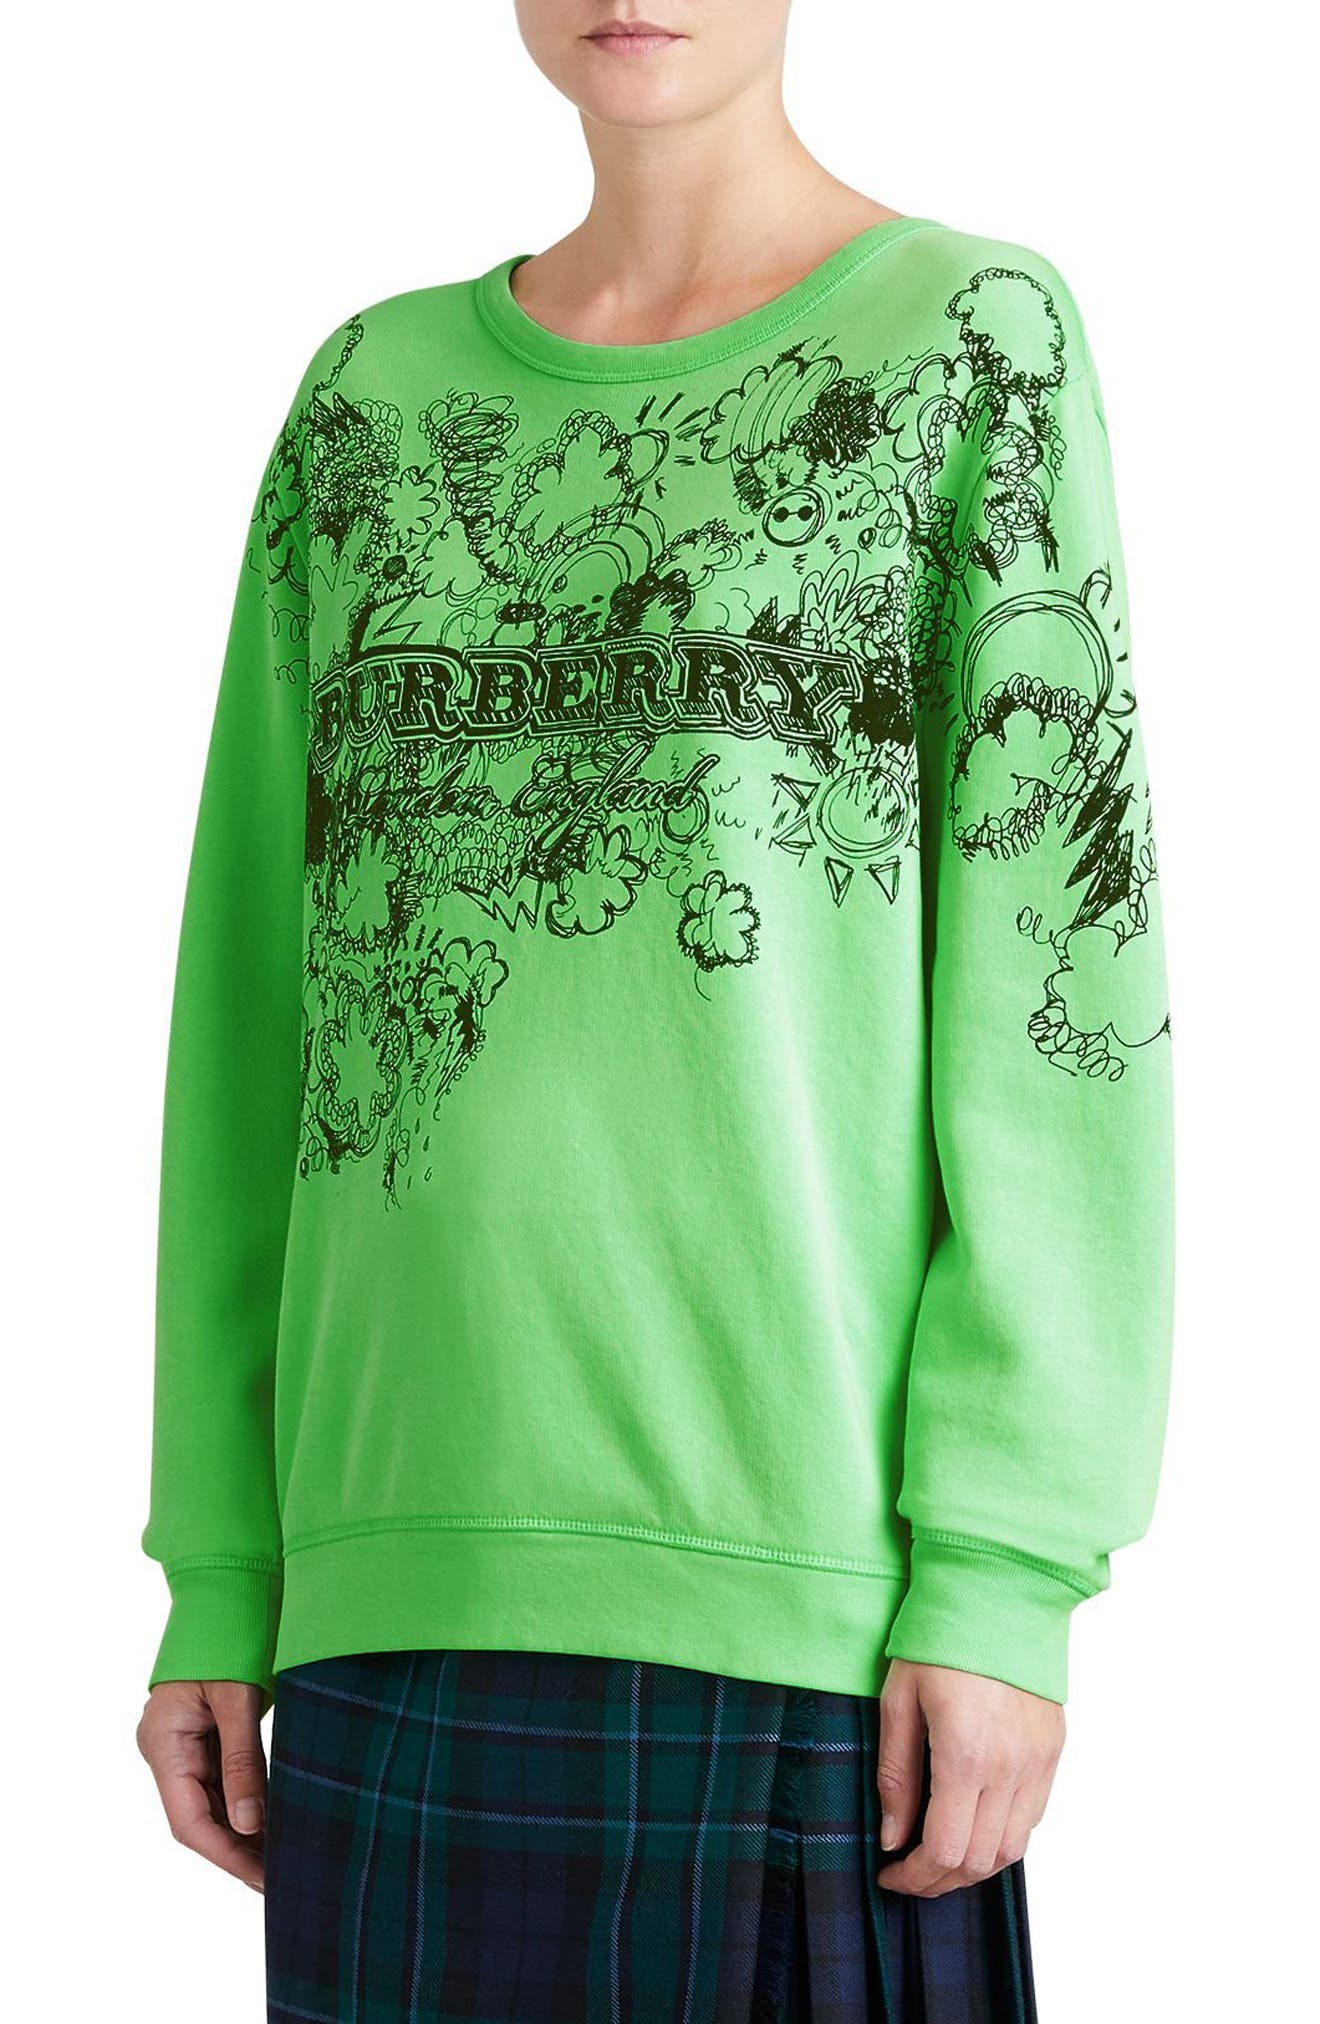 Madon Print Sweatshirt,                             Alternate thumbnail 4, color,                             Bright Apple Green